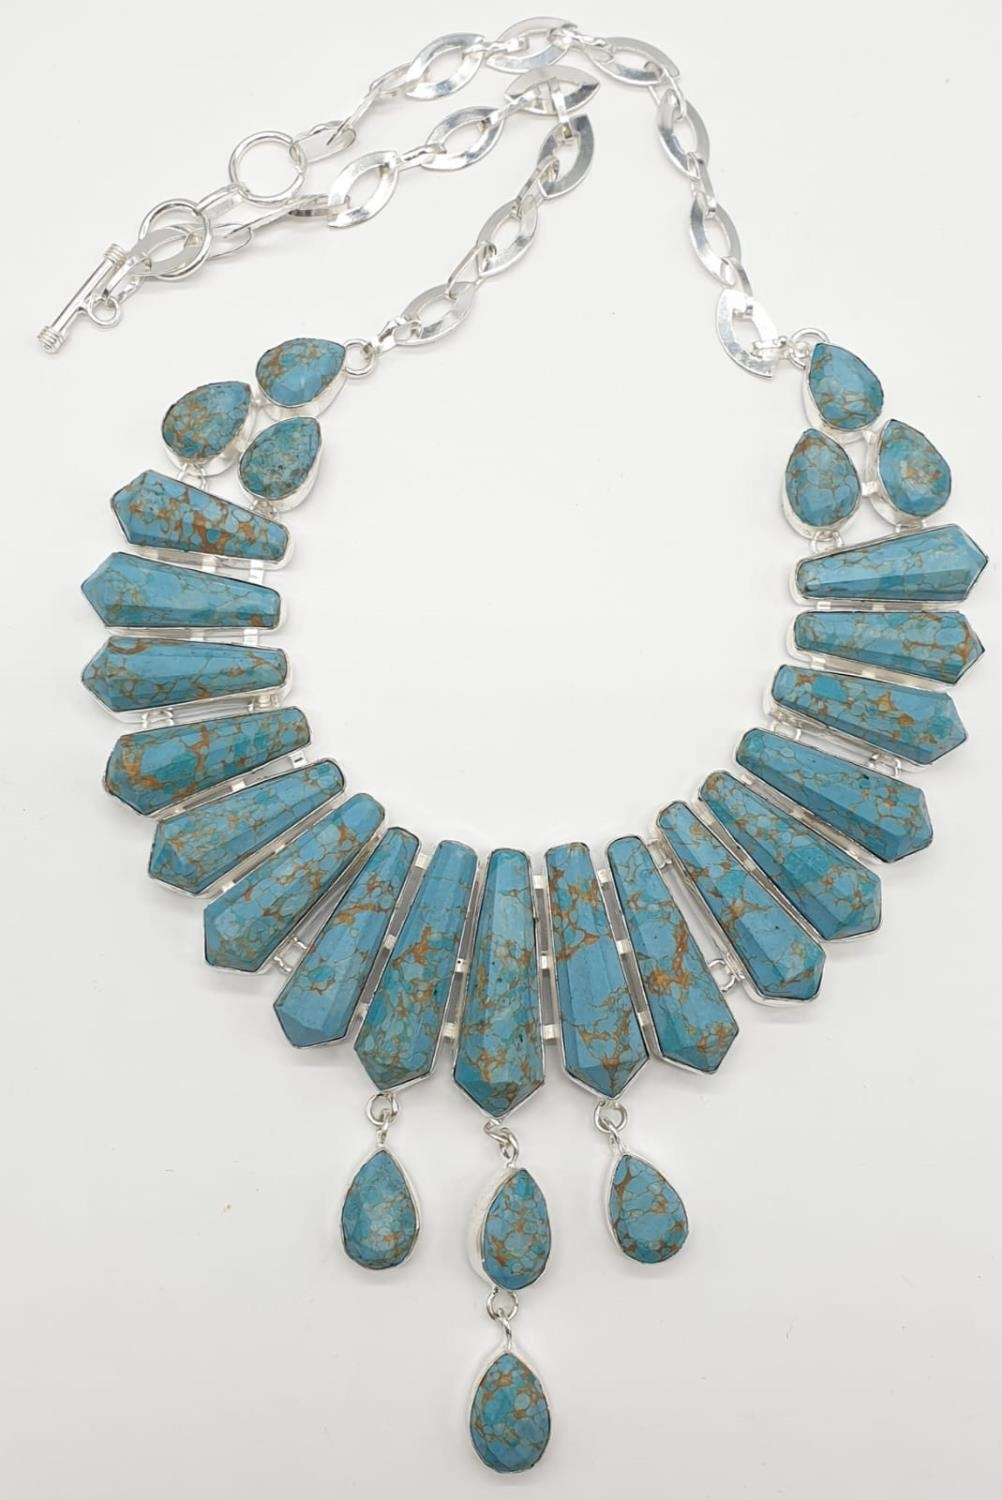 A Pharaonic style necklace and earrings set with light brown-gold veined turquoise obelisks and - Image 6 of 24